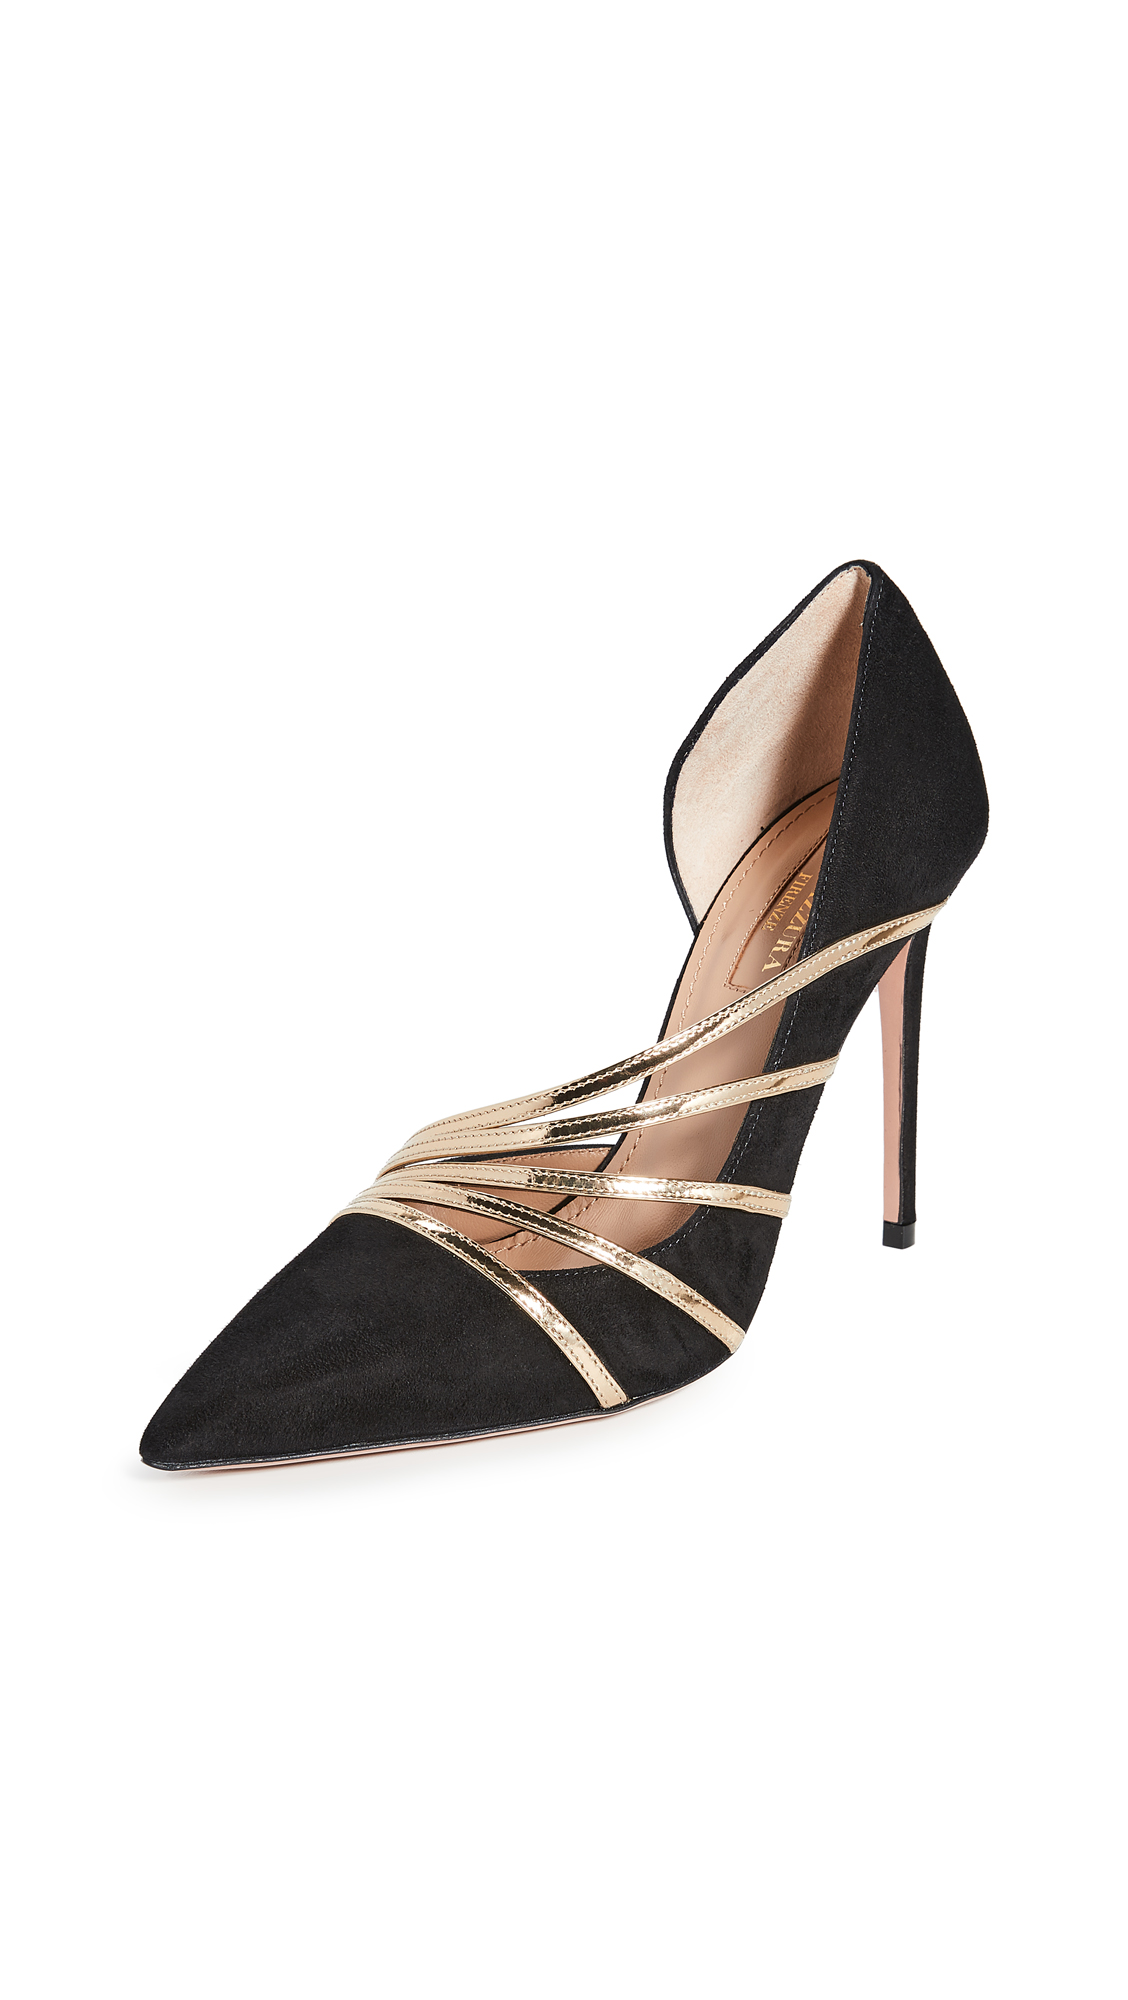 Buy Aquazzura online - photo of Aquazzura 105mm Minou Pumps